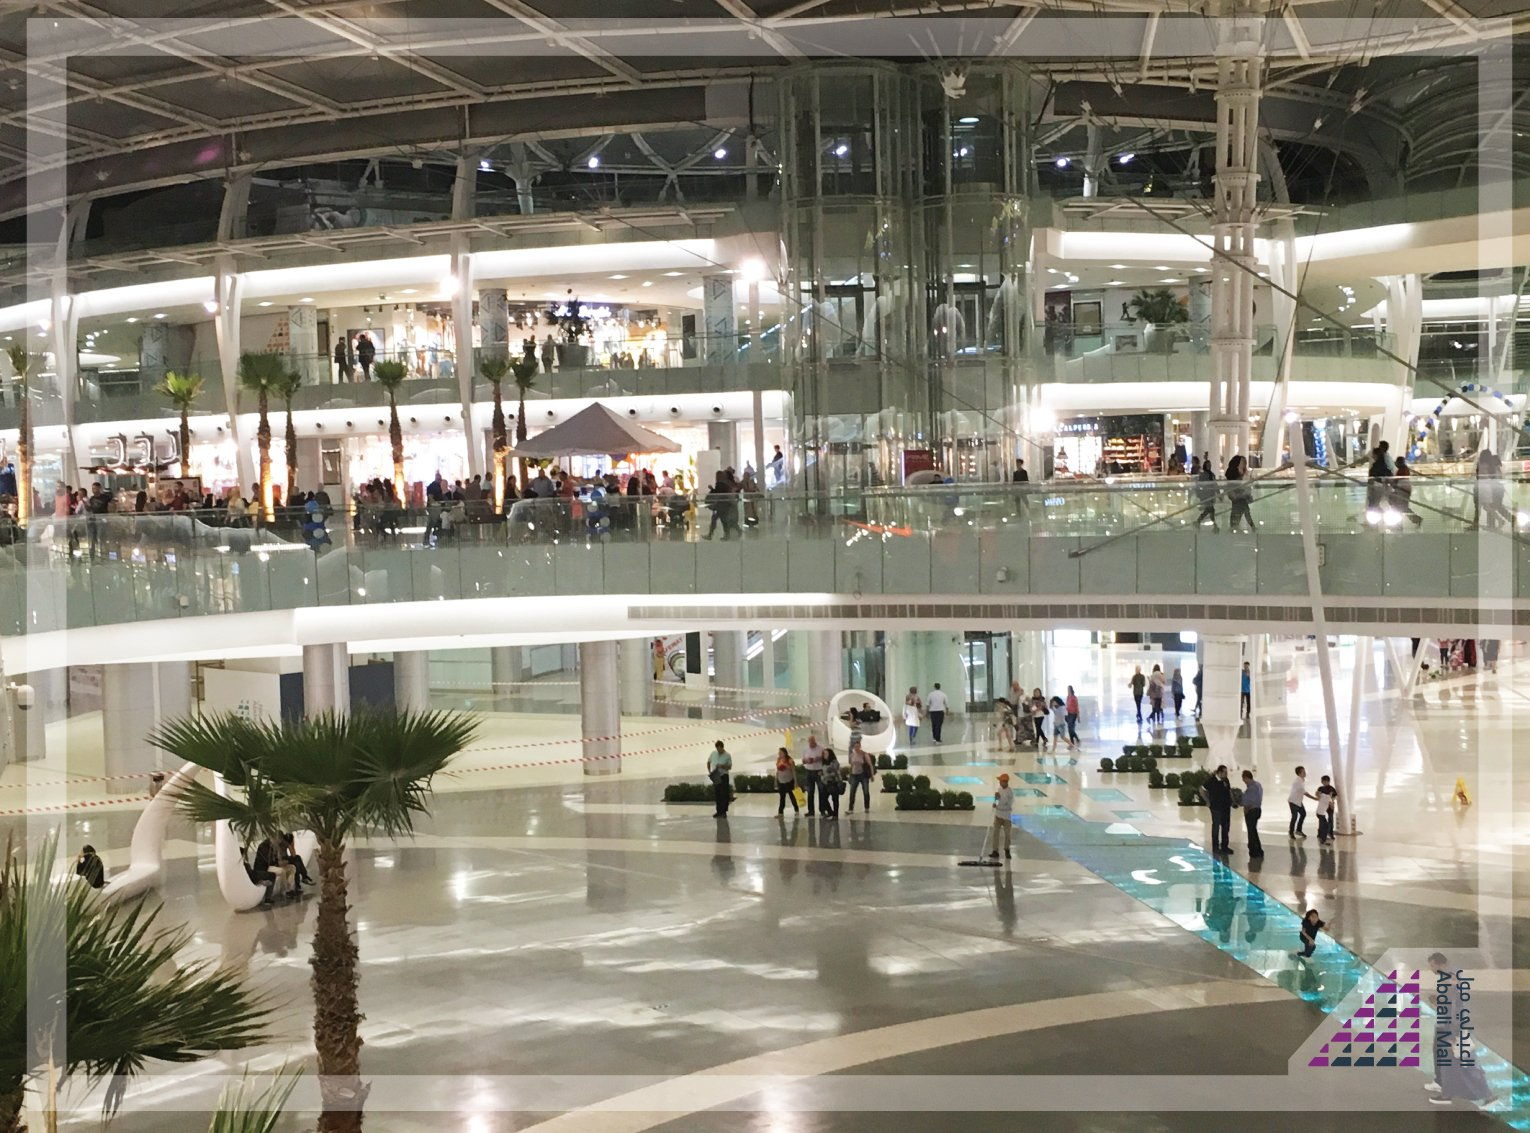 Abdali Mall What Are Your Plans Still Dont Know Come And Experience With Loved Ones AbdaliMall AbdaliJO LoveJO